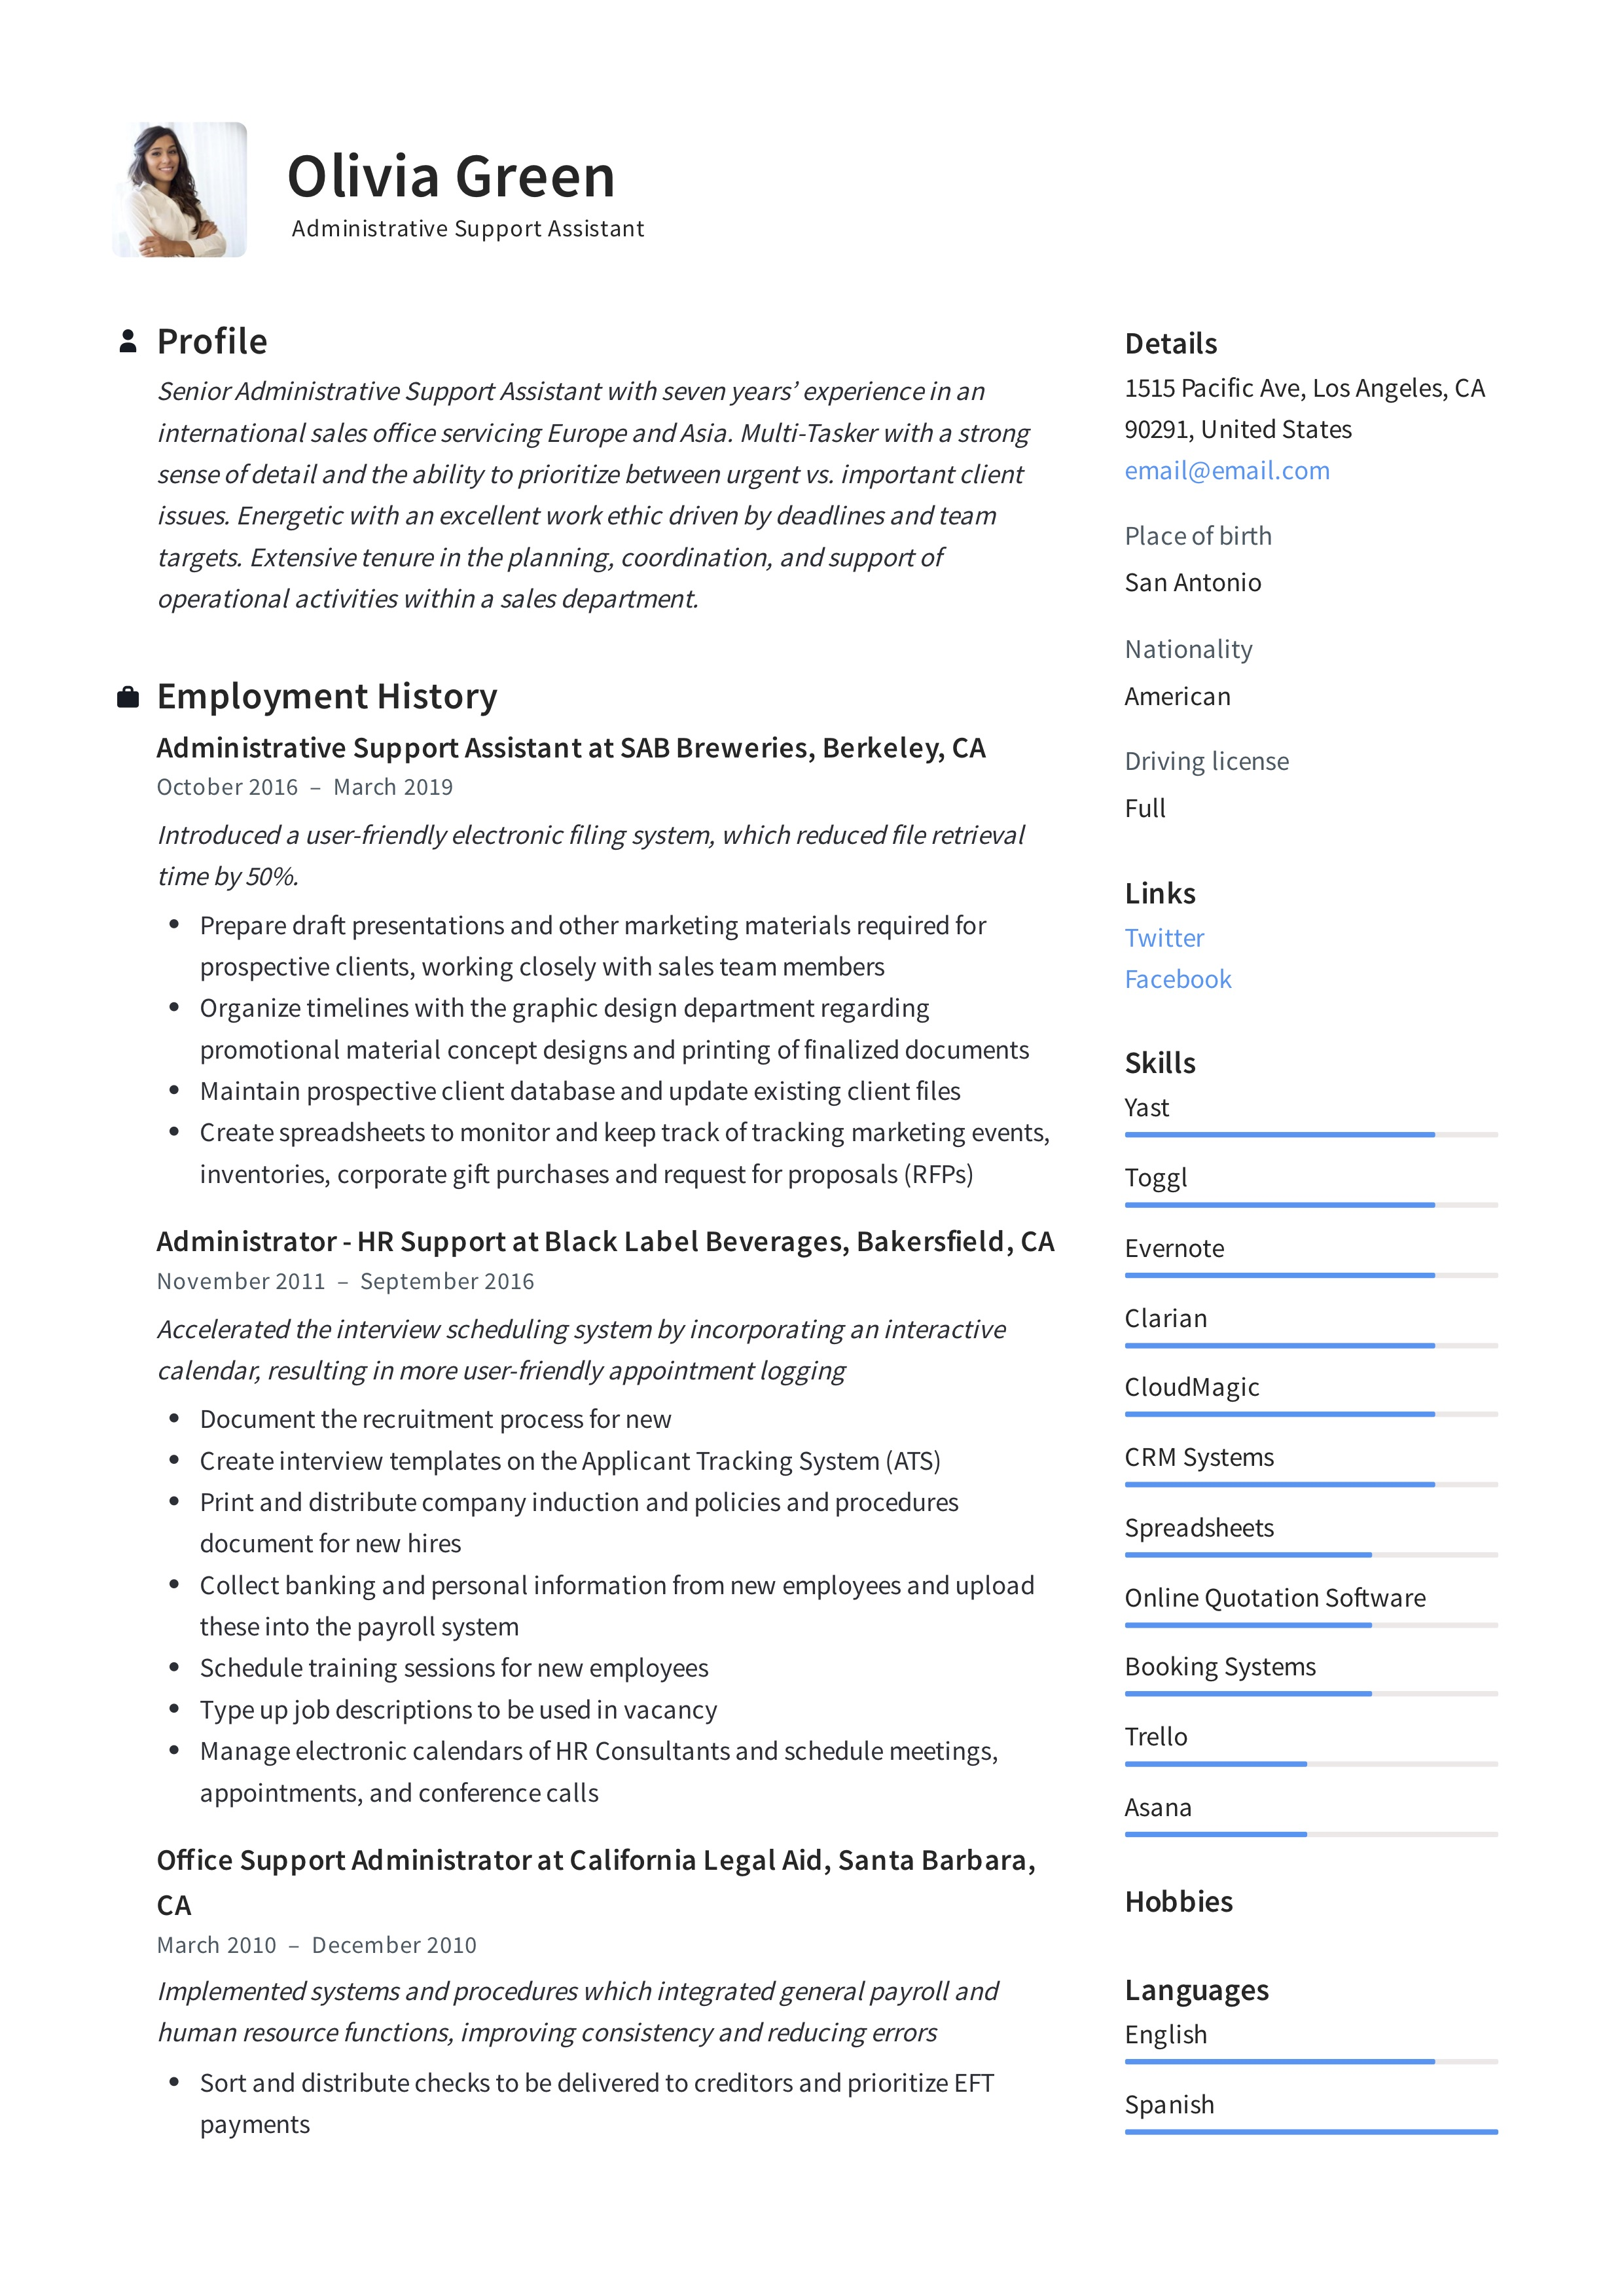 Administrative Support Assistant Resume Examples